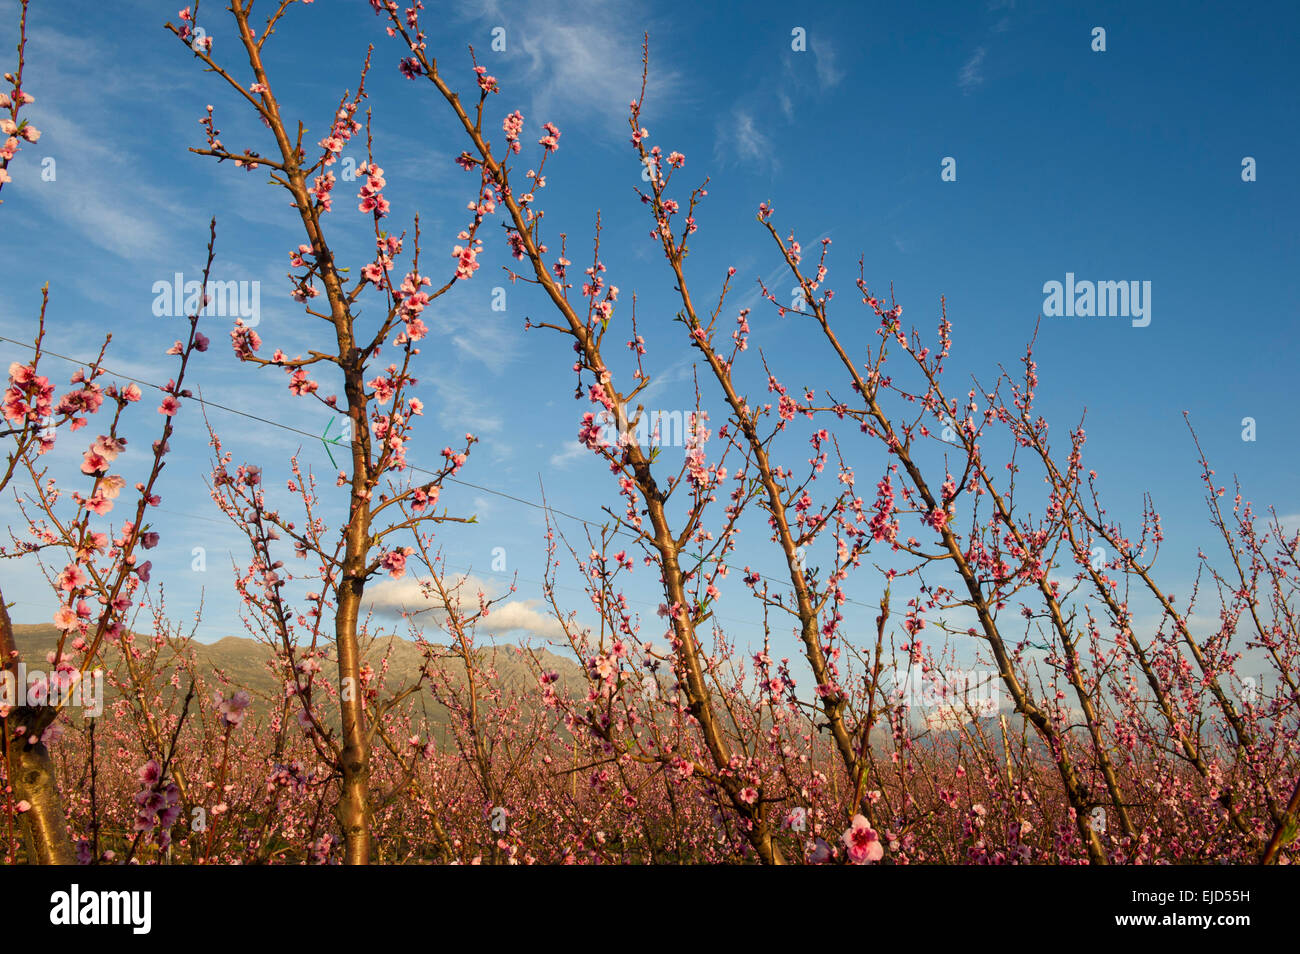 Fruit tree blossoms at the base of the Winterhoek Mountains, Tulbagh, South Africa - Stock Image